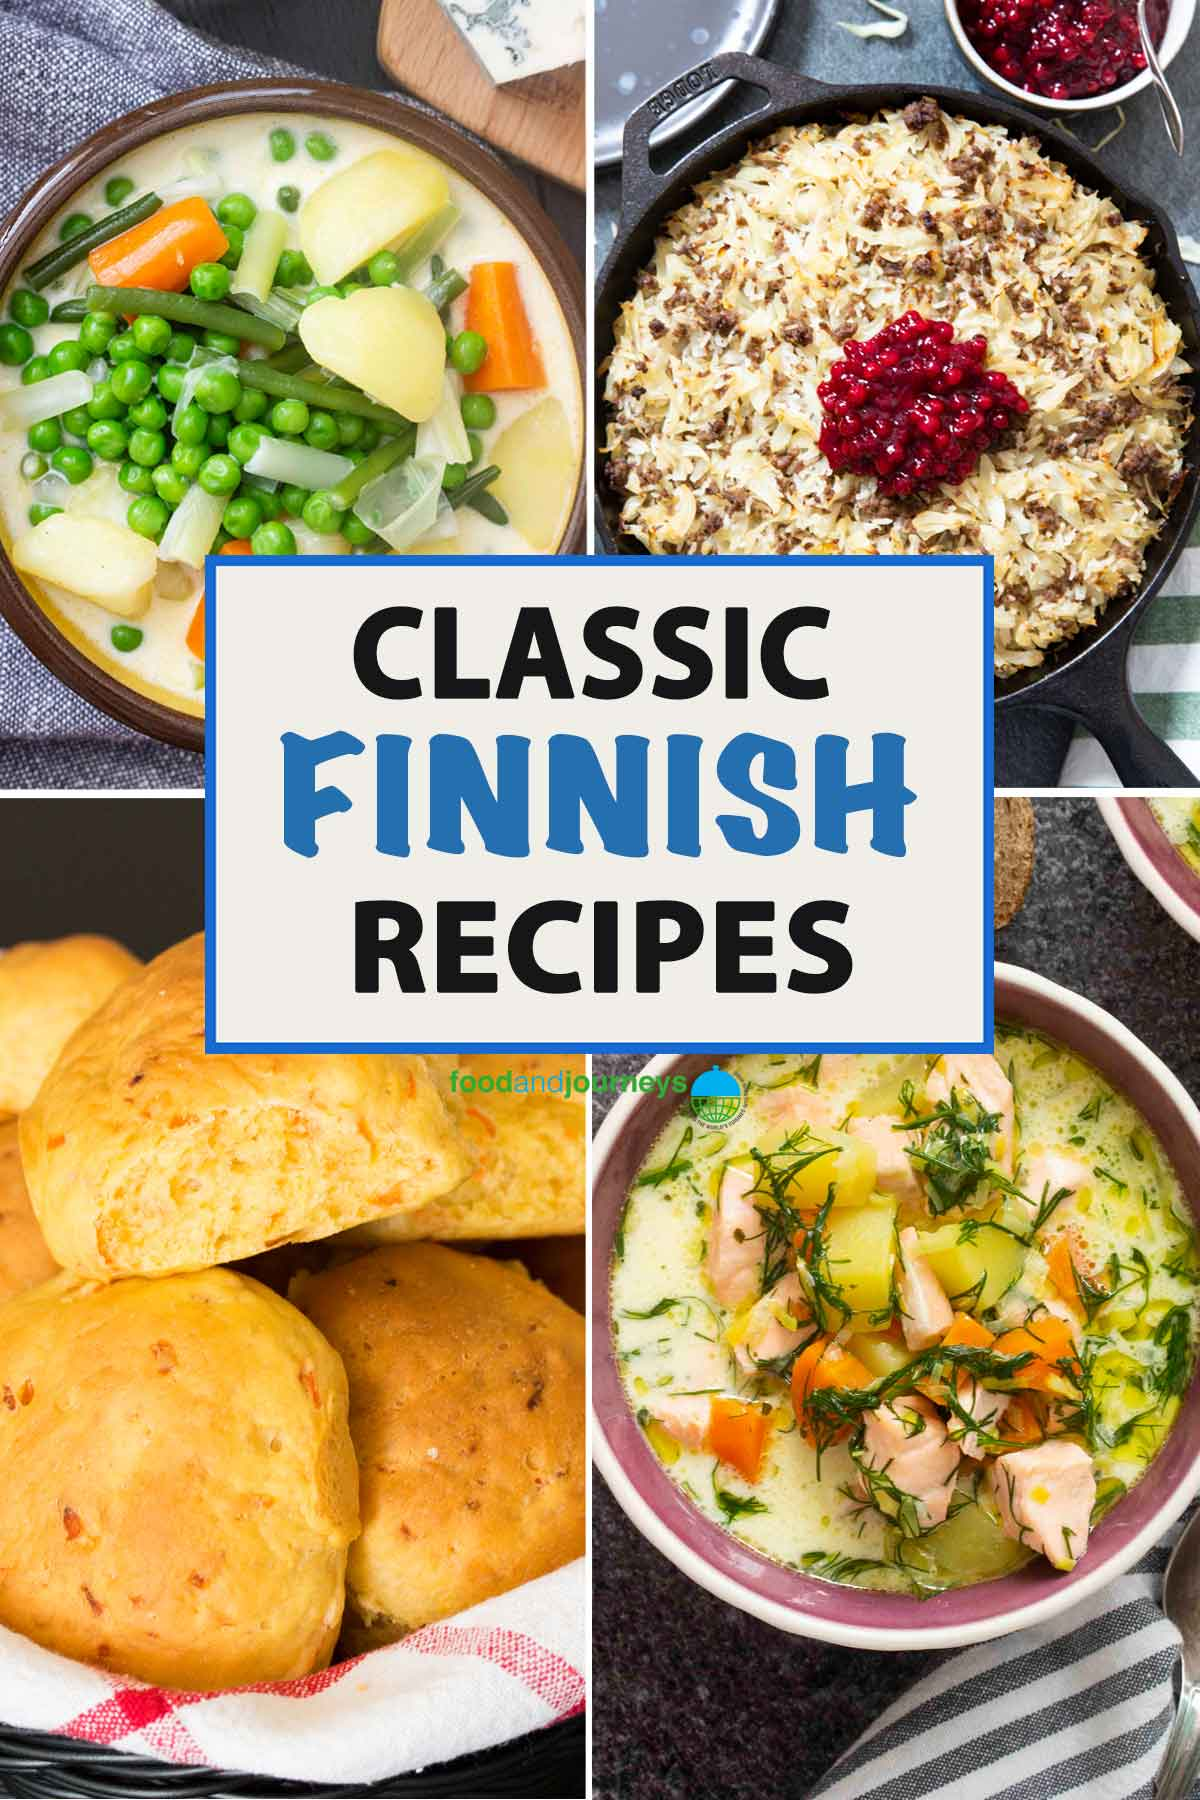 A collage of images showing some traditional Finnish dishes.